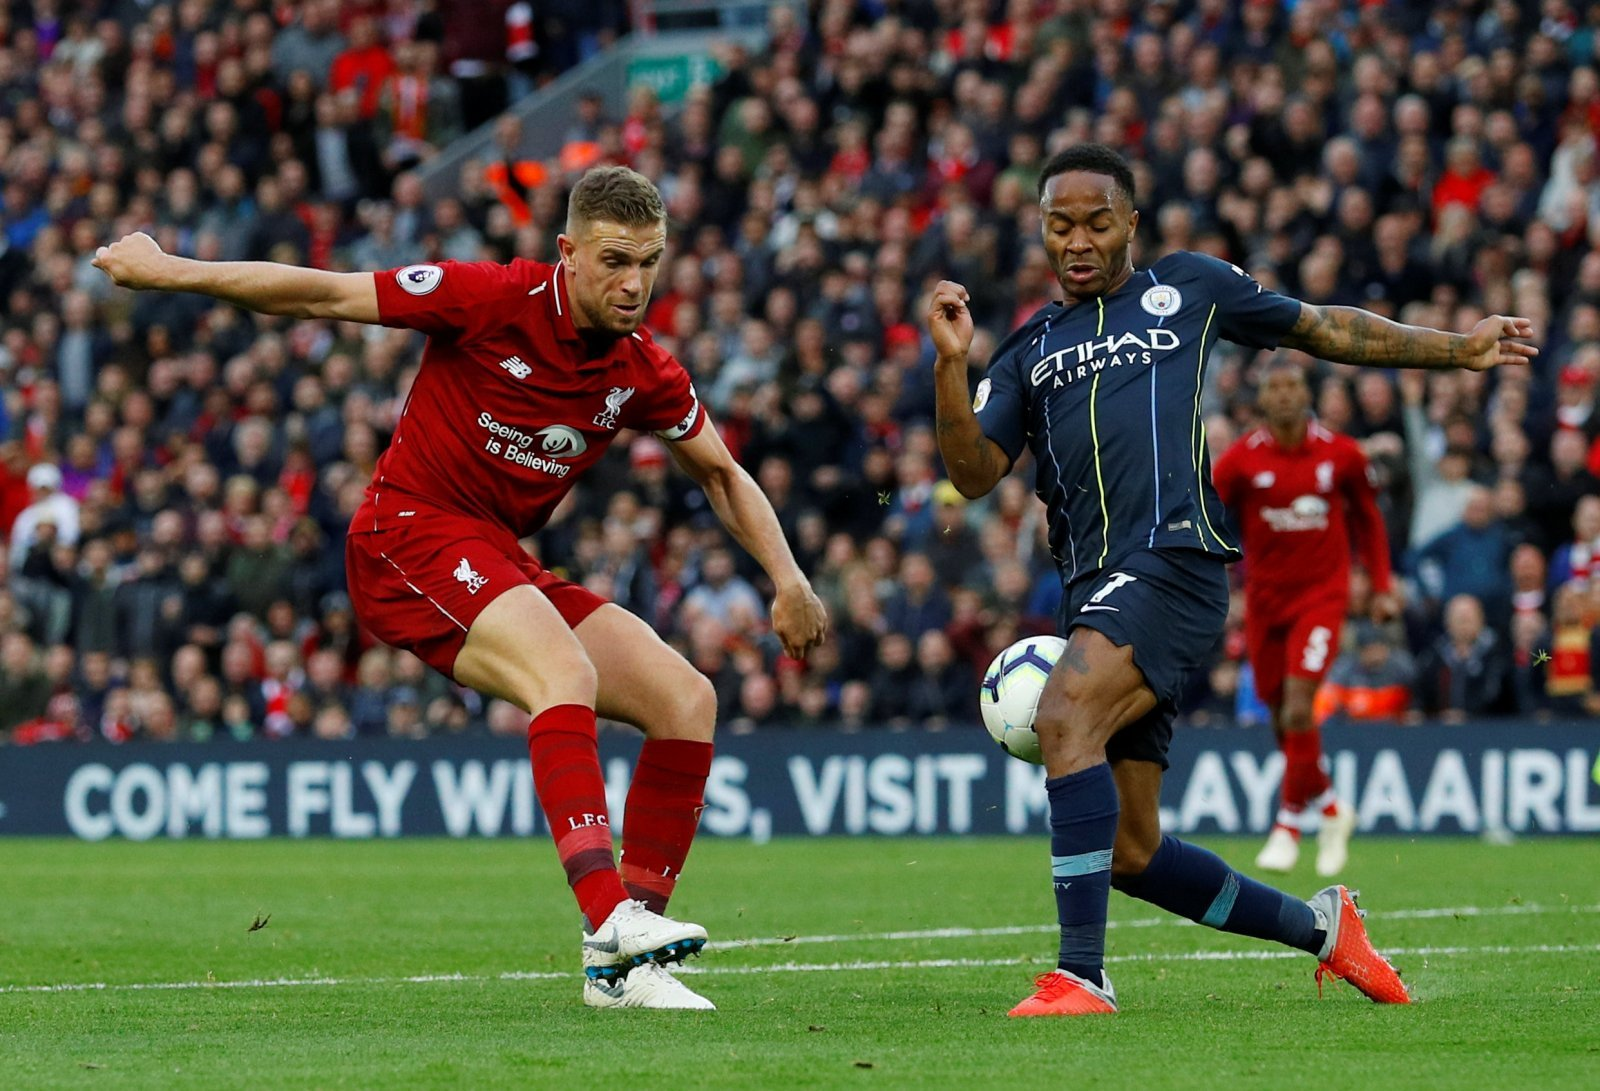 Liverpool fans on Twitter glad to see Henderson return from injury